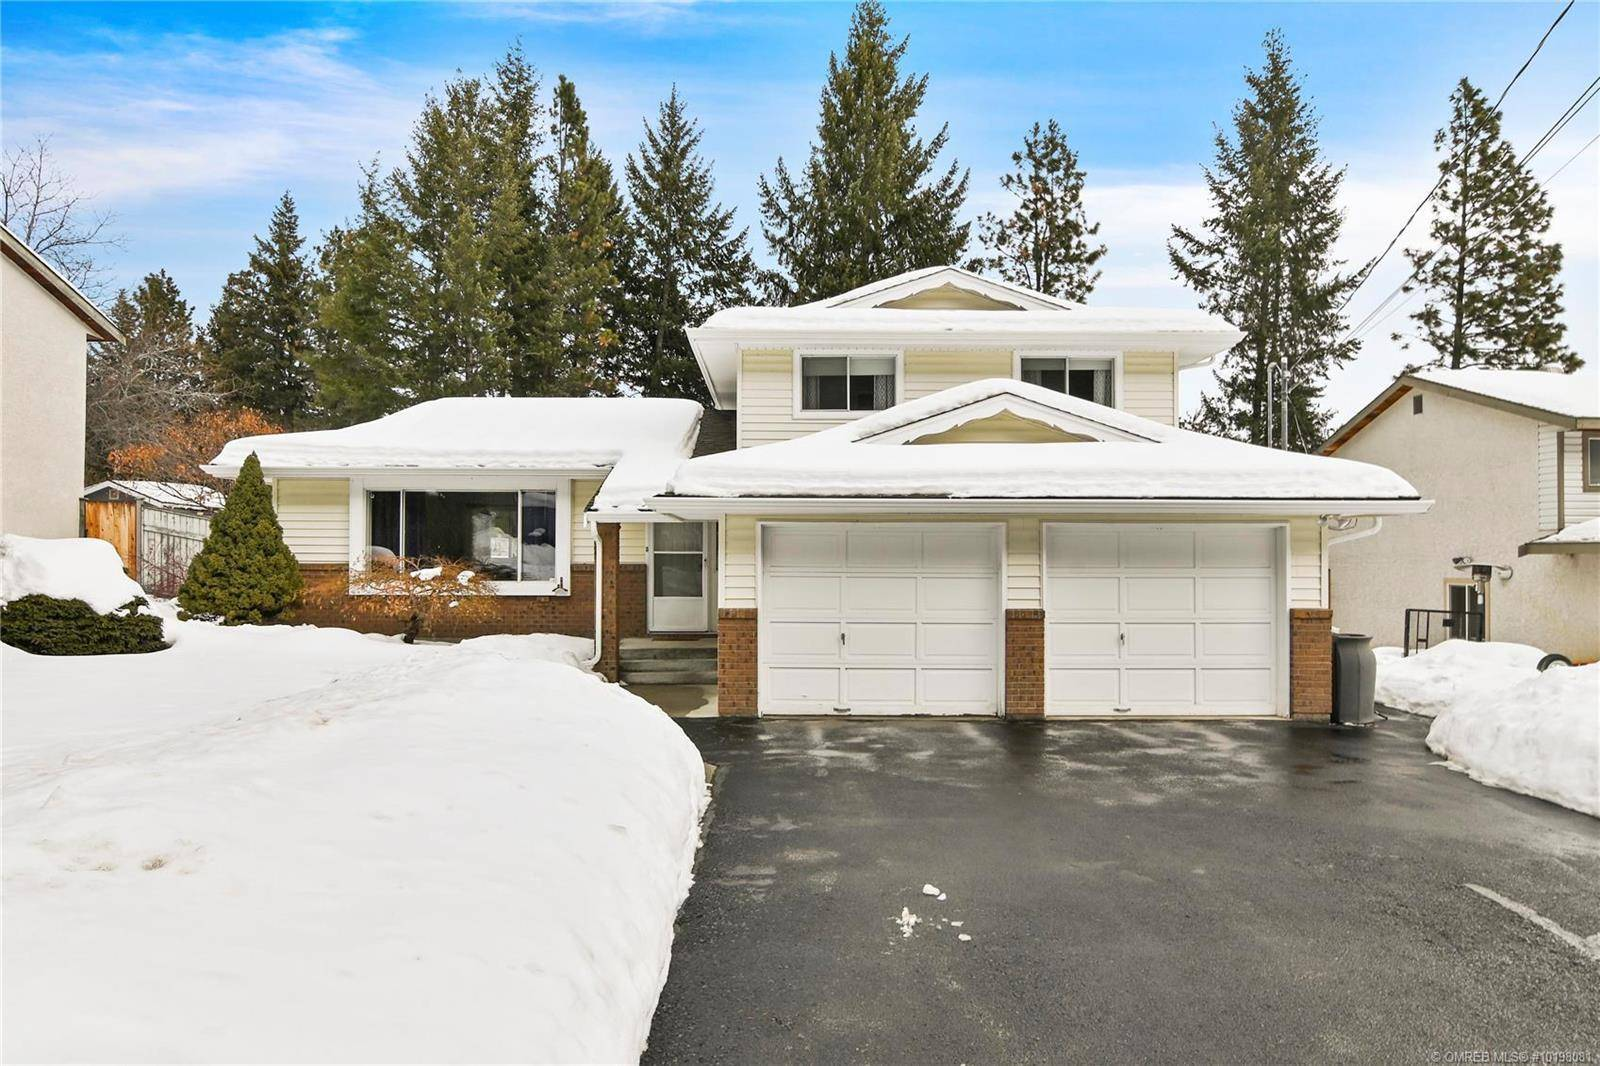 House for sale at 3125 Webber Rd West Kelowna British Columbia - MLS: 10198081